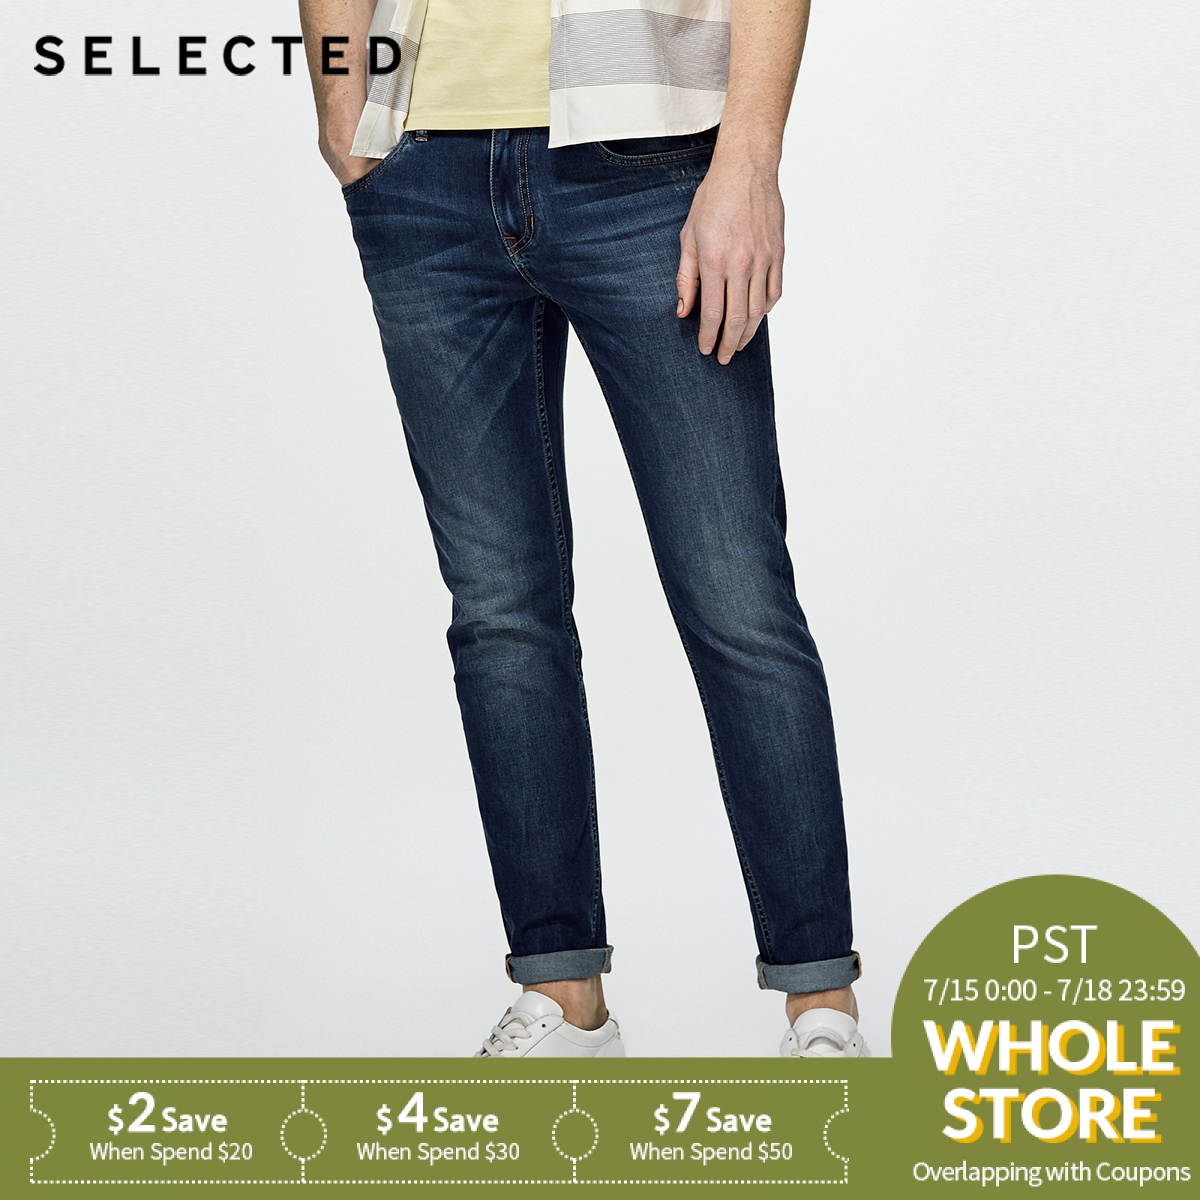 SELECTED Cotton-blend slim faded and washed   jean   pants C|418232519